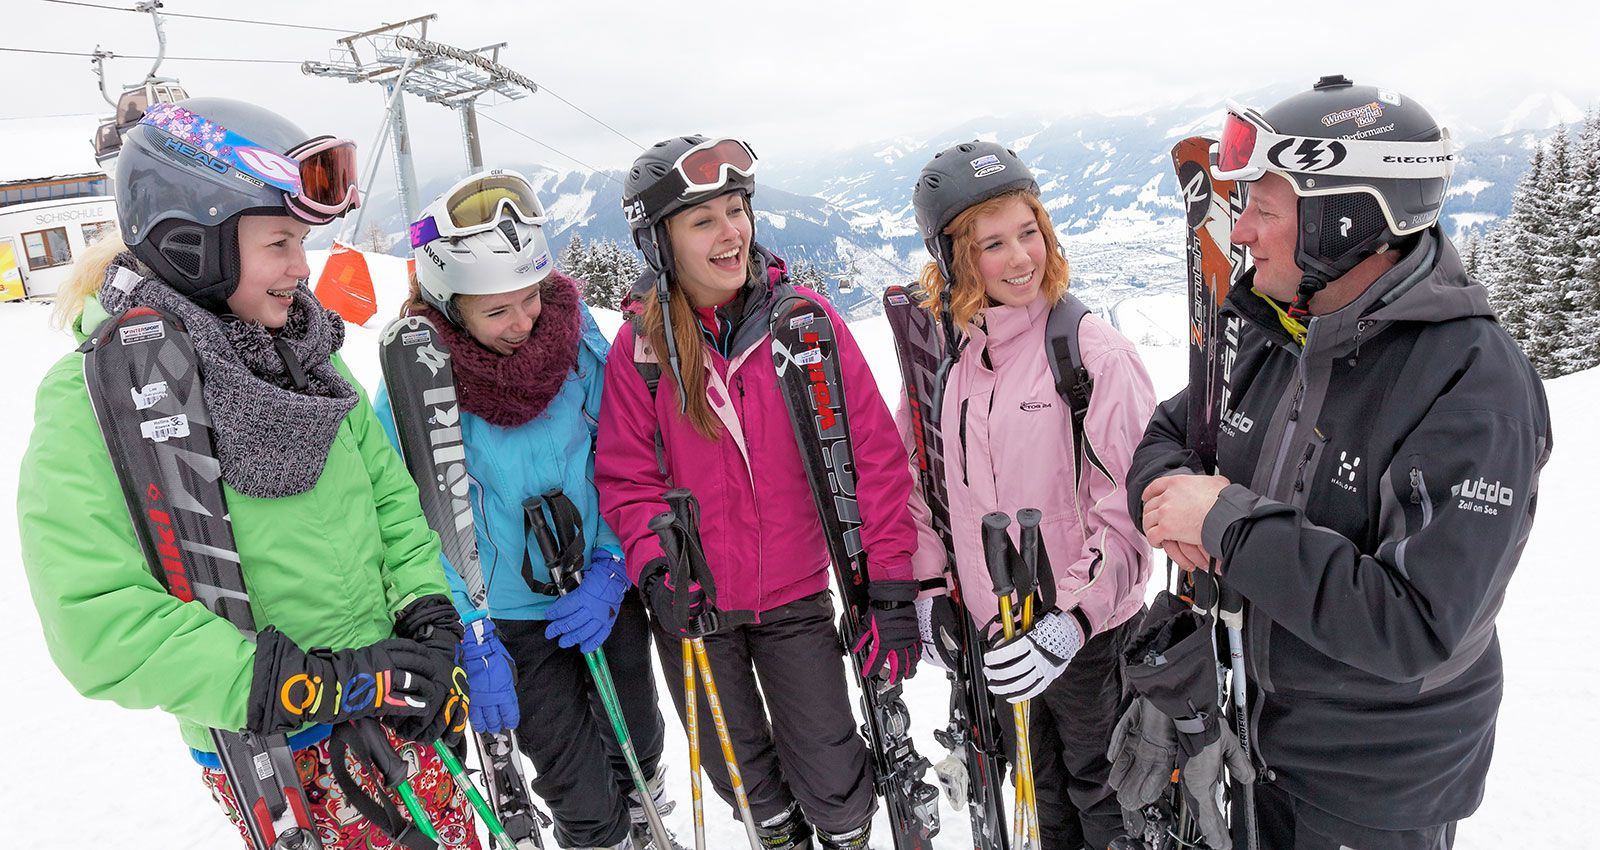 School ski for small groups